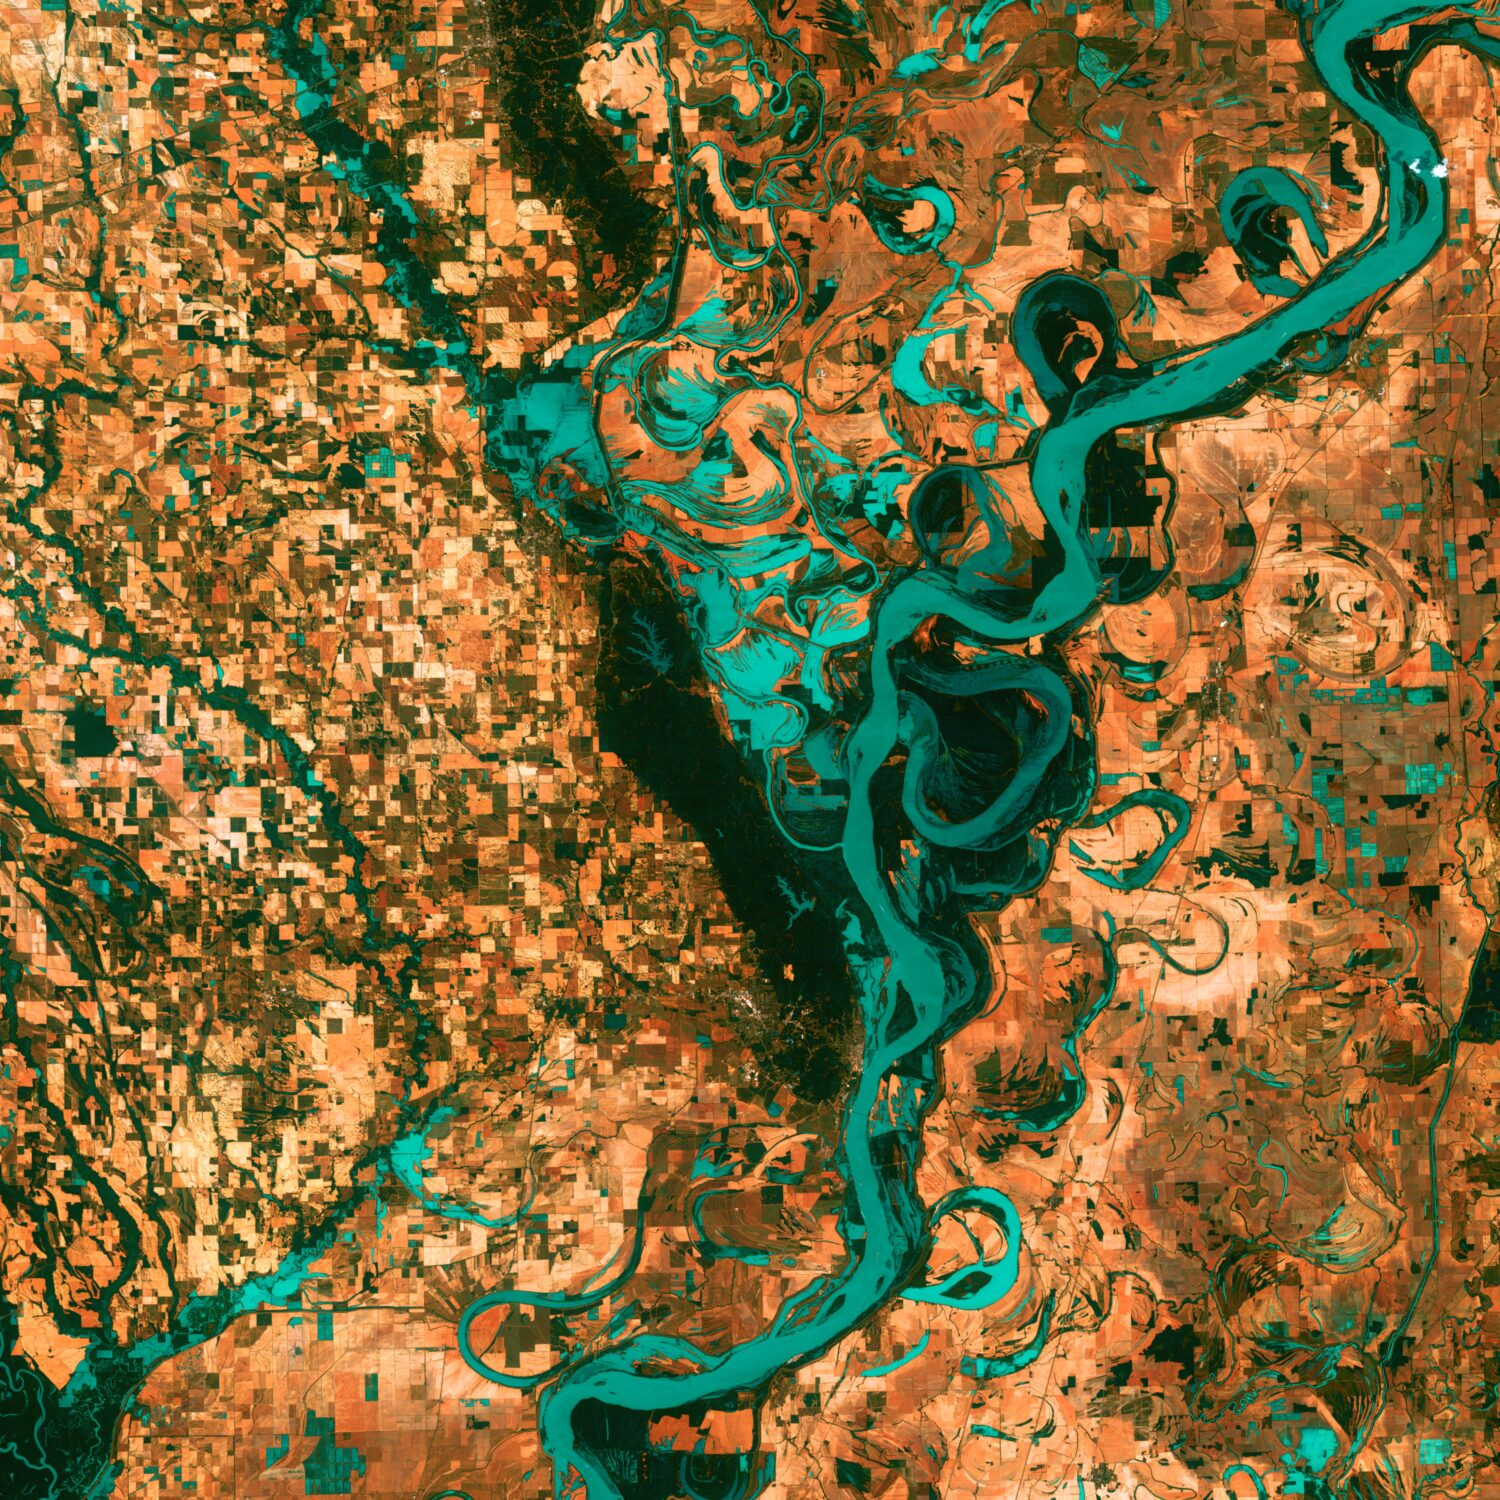 """Small, blocky shapes of towns, fields, and pastures surround the graceful swirls and whorls of the Mississippi River. Countless oxbow lakes and cutoffs accompany the meandering river south of Memphis, Tennessee, on the border between Arkansas and Mississippi, USA. The """"mighty Mississippi"""" is the largest river system in North America."""